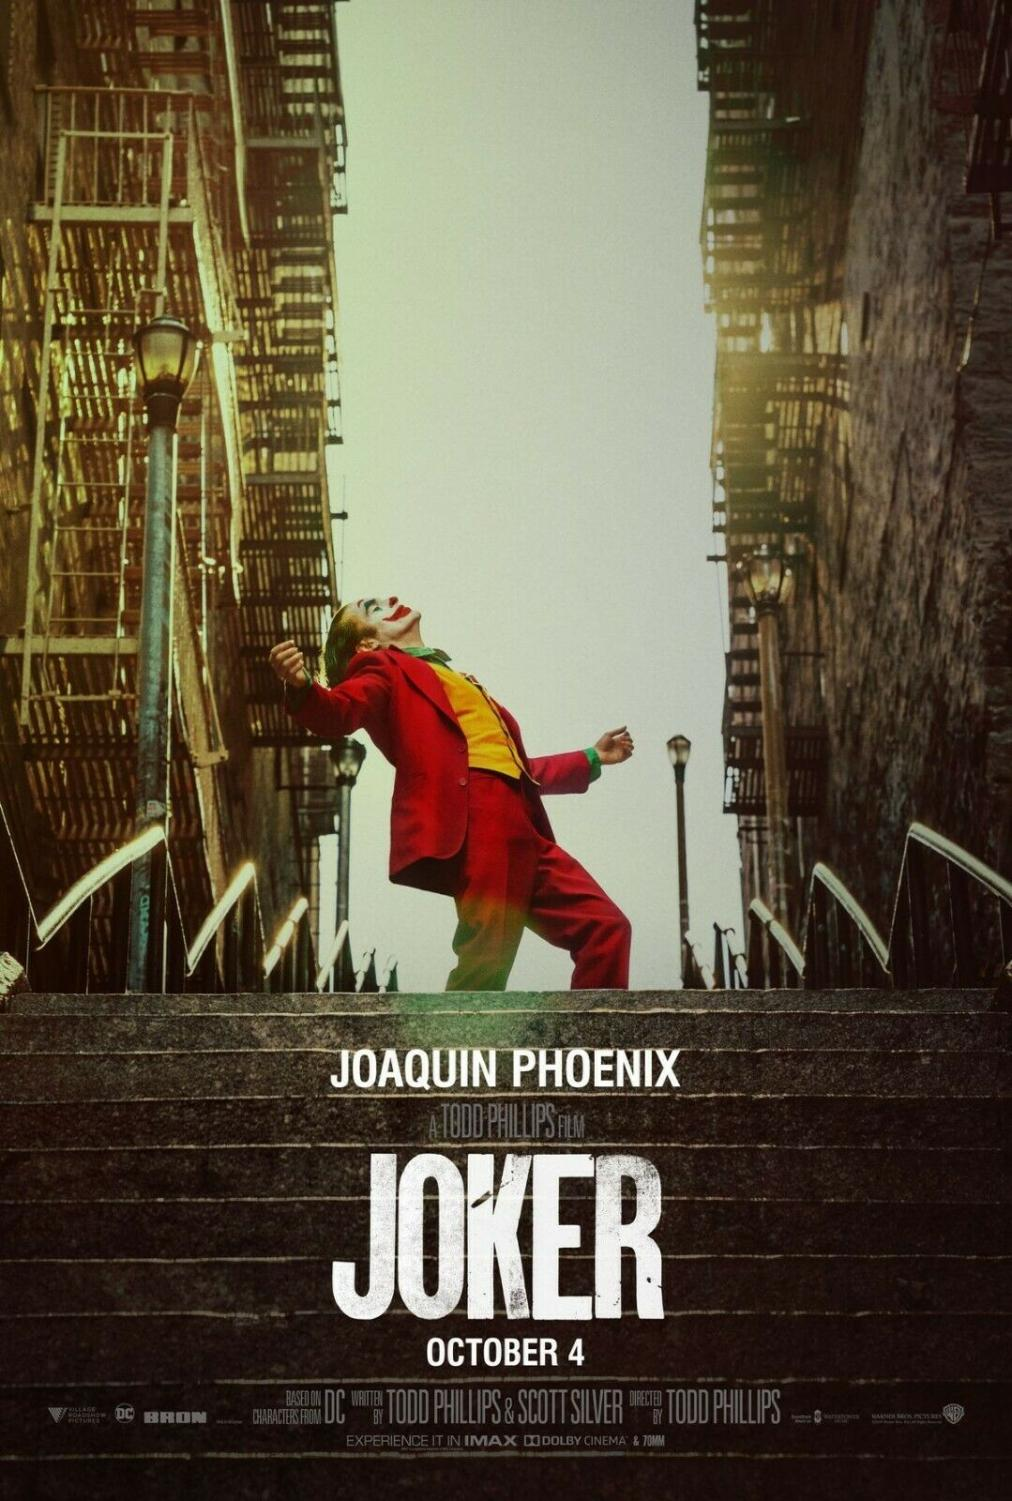 A movie poster for Joker, which has the most nominations of the 2020 Academy Awards.